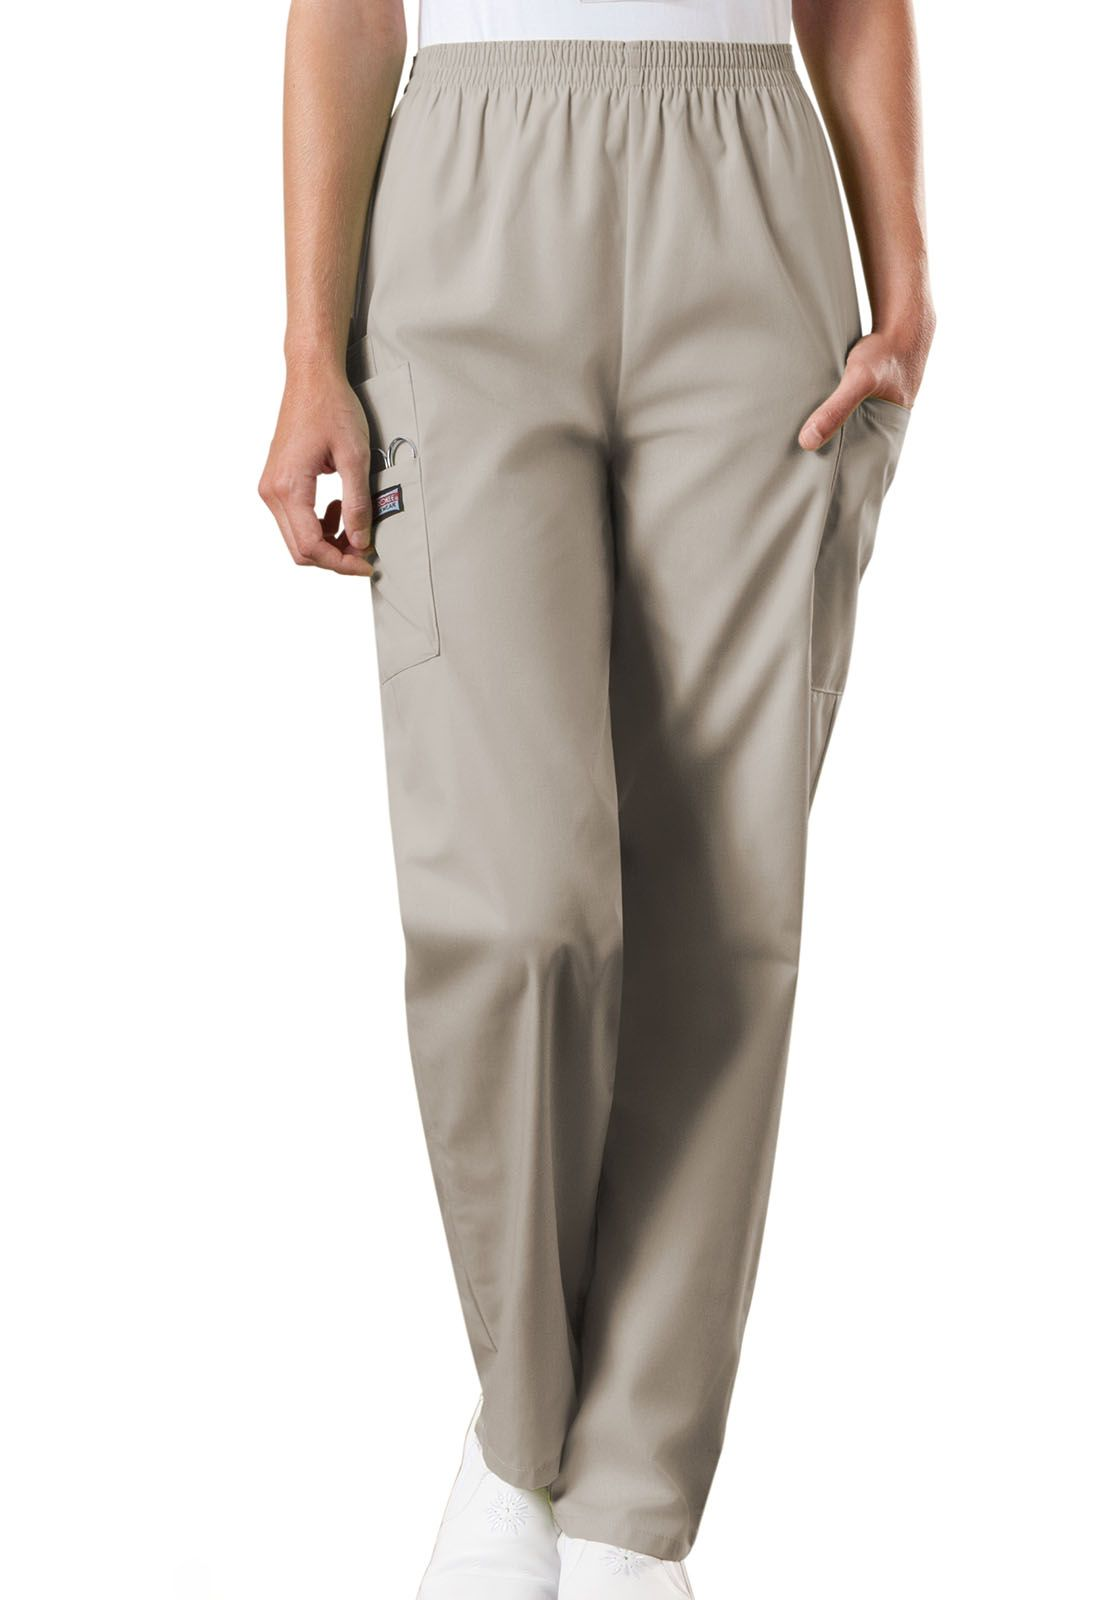 Cherokee Workwear Originals Natural Rise Tapered Pull-On Cargo Pant (Petite Length) - Company Store Uniforms